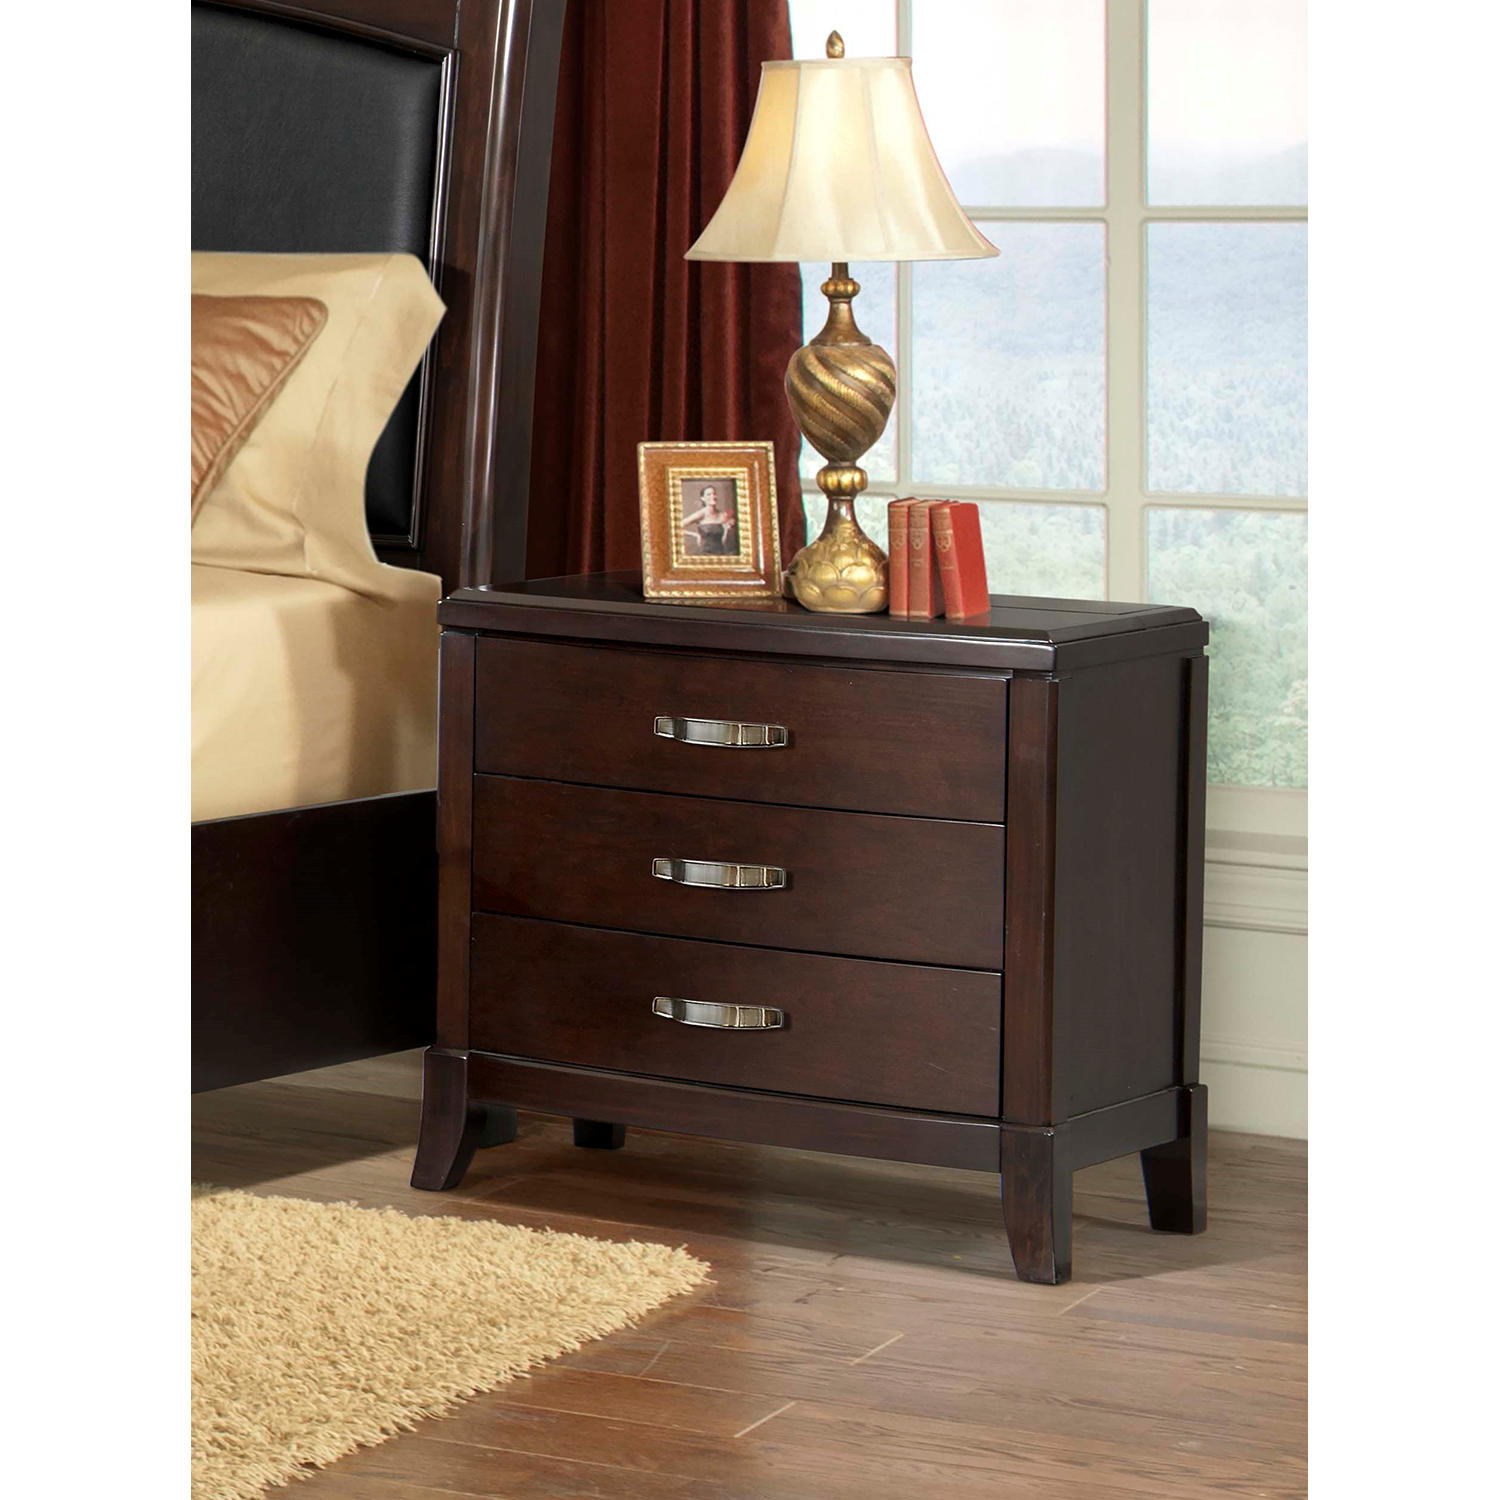 Society Den Elaine Nightstand with Power Strip and USB Ports